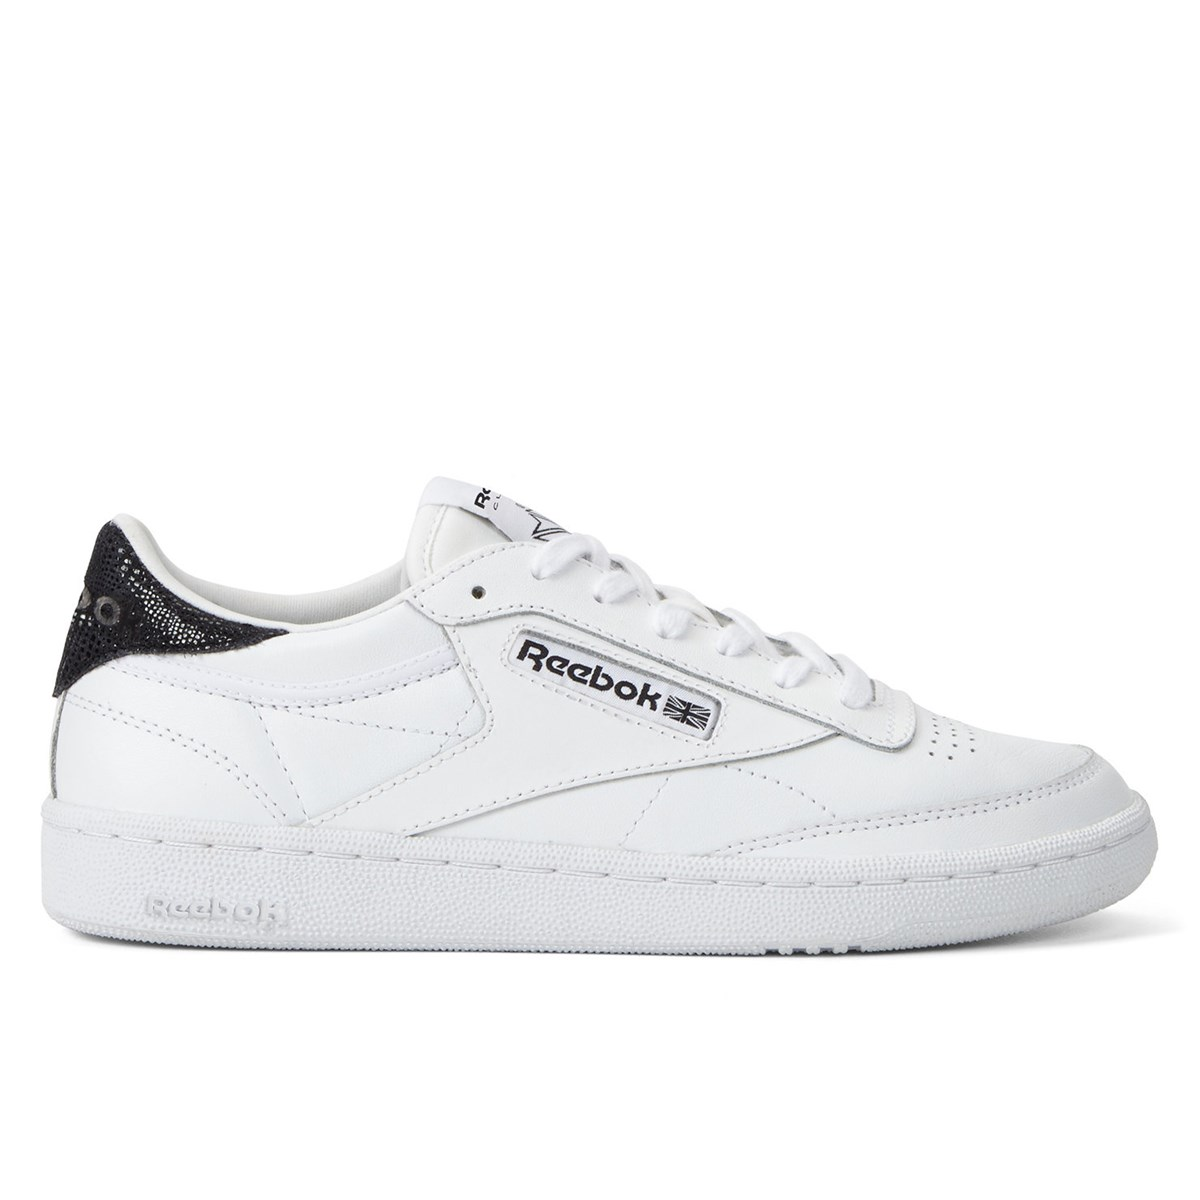 f0f51dca02dacd Women s Club C 85 White Sneaker. Previous. default view  ALT1  ALT2